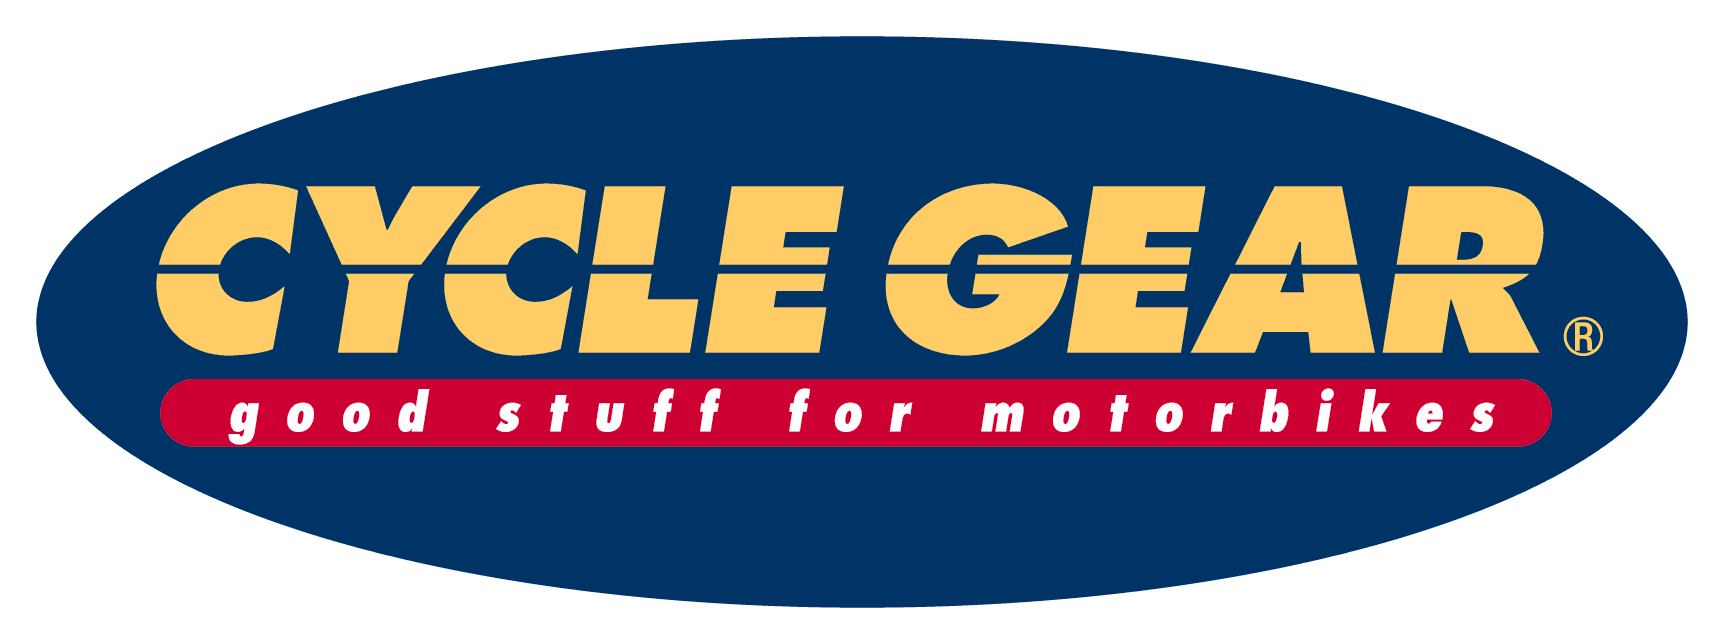 Cycle Gear.png